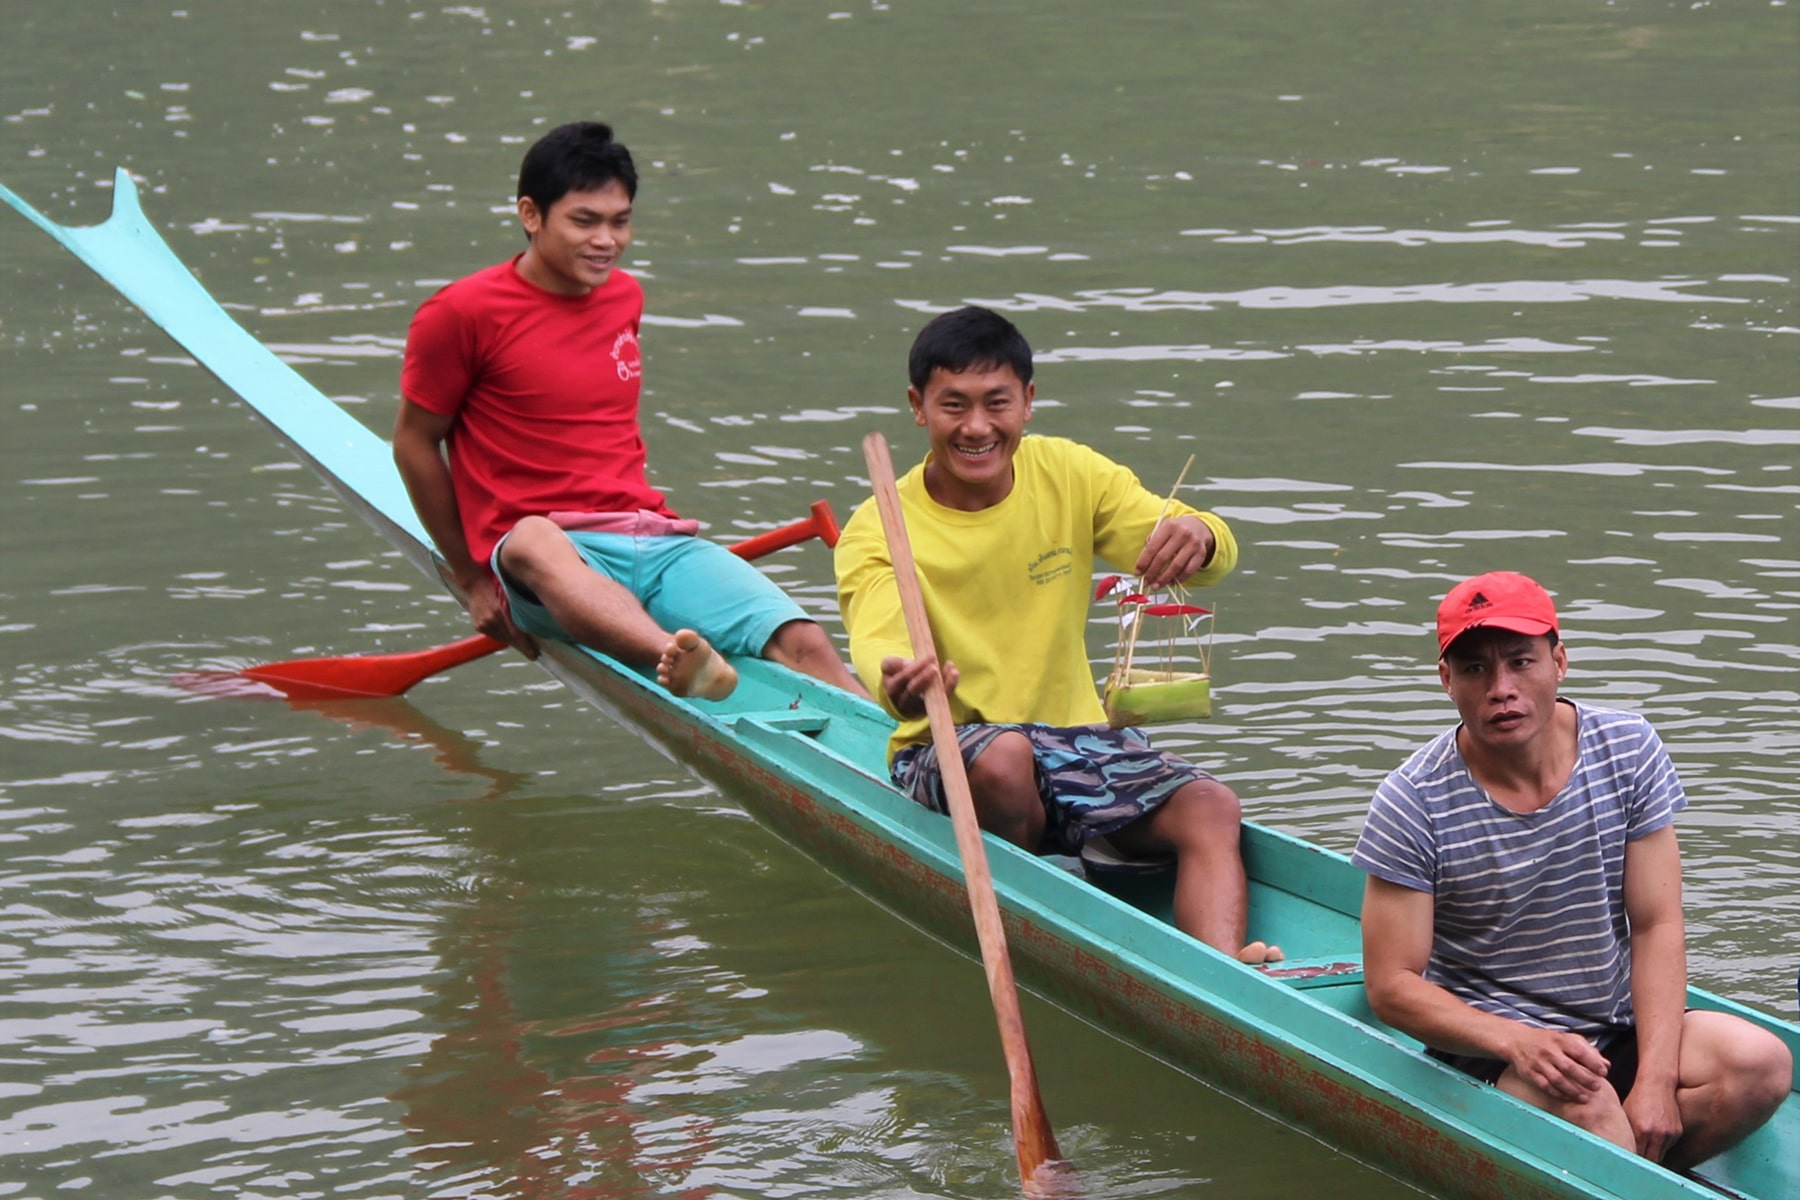 Laotians Village people on the boat holding tiny bamboo boats as good luck charm